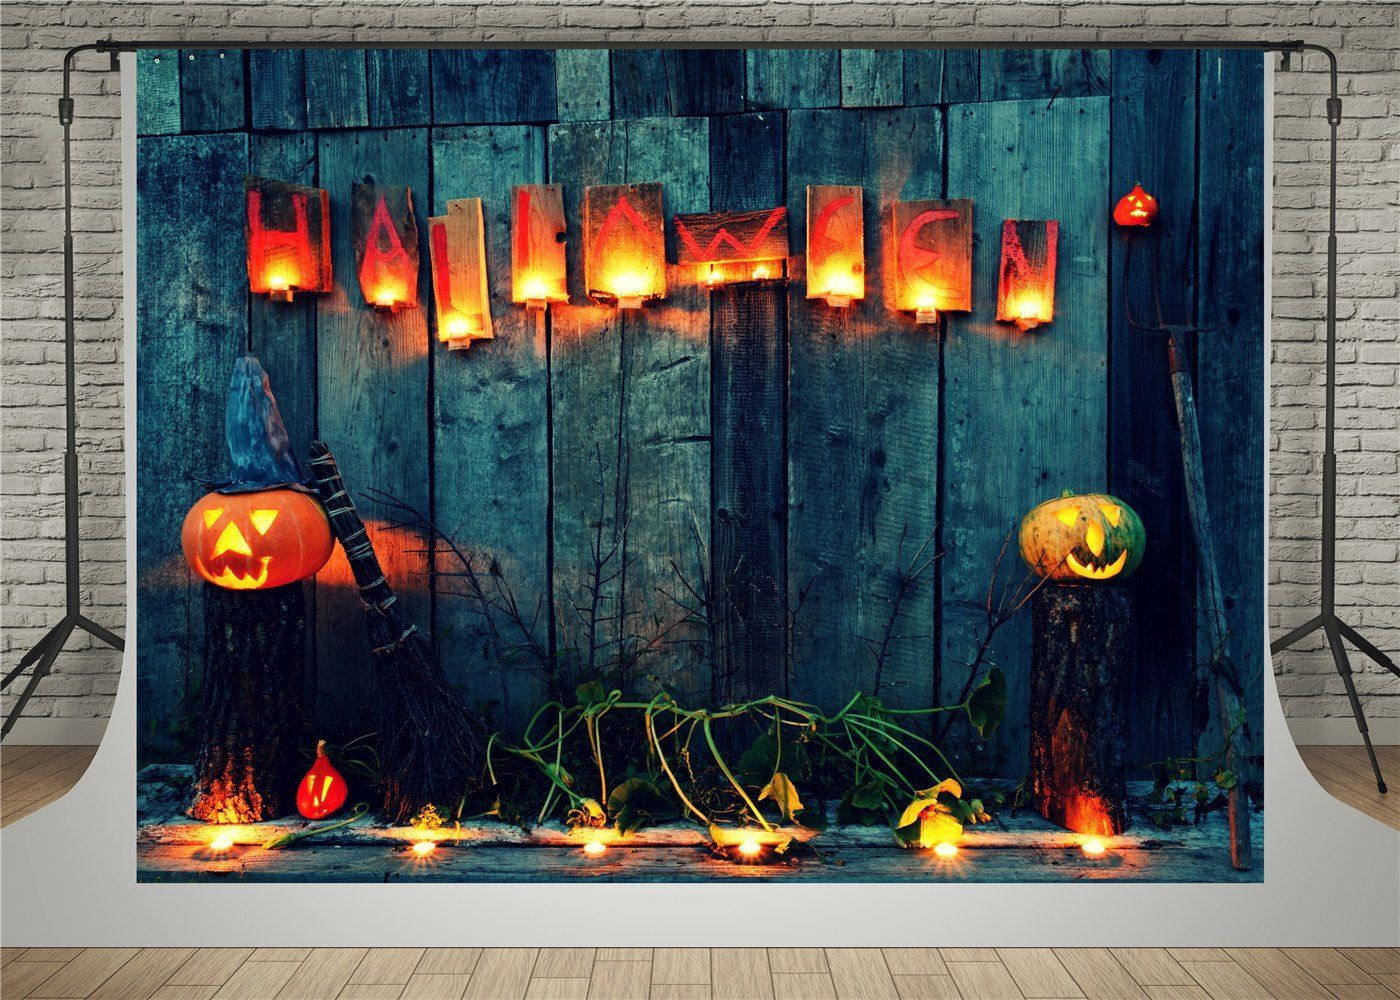 Halloween Theme Backdrop 8x6ft Polyester Photography Background Seaside Beach Handsome Pumpkin in Cowboy Hat Small Broomstick Scene Trick or Treat Party Decoration Summer Holiday Vacation Shoot